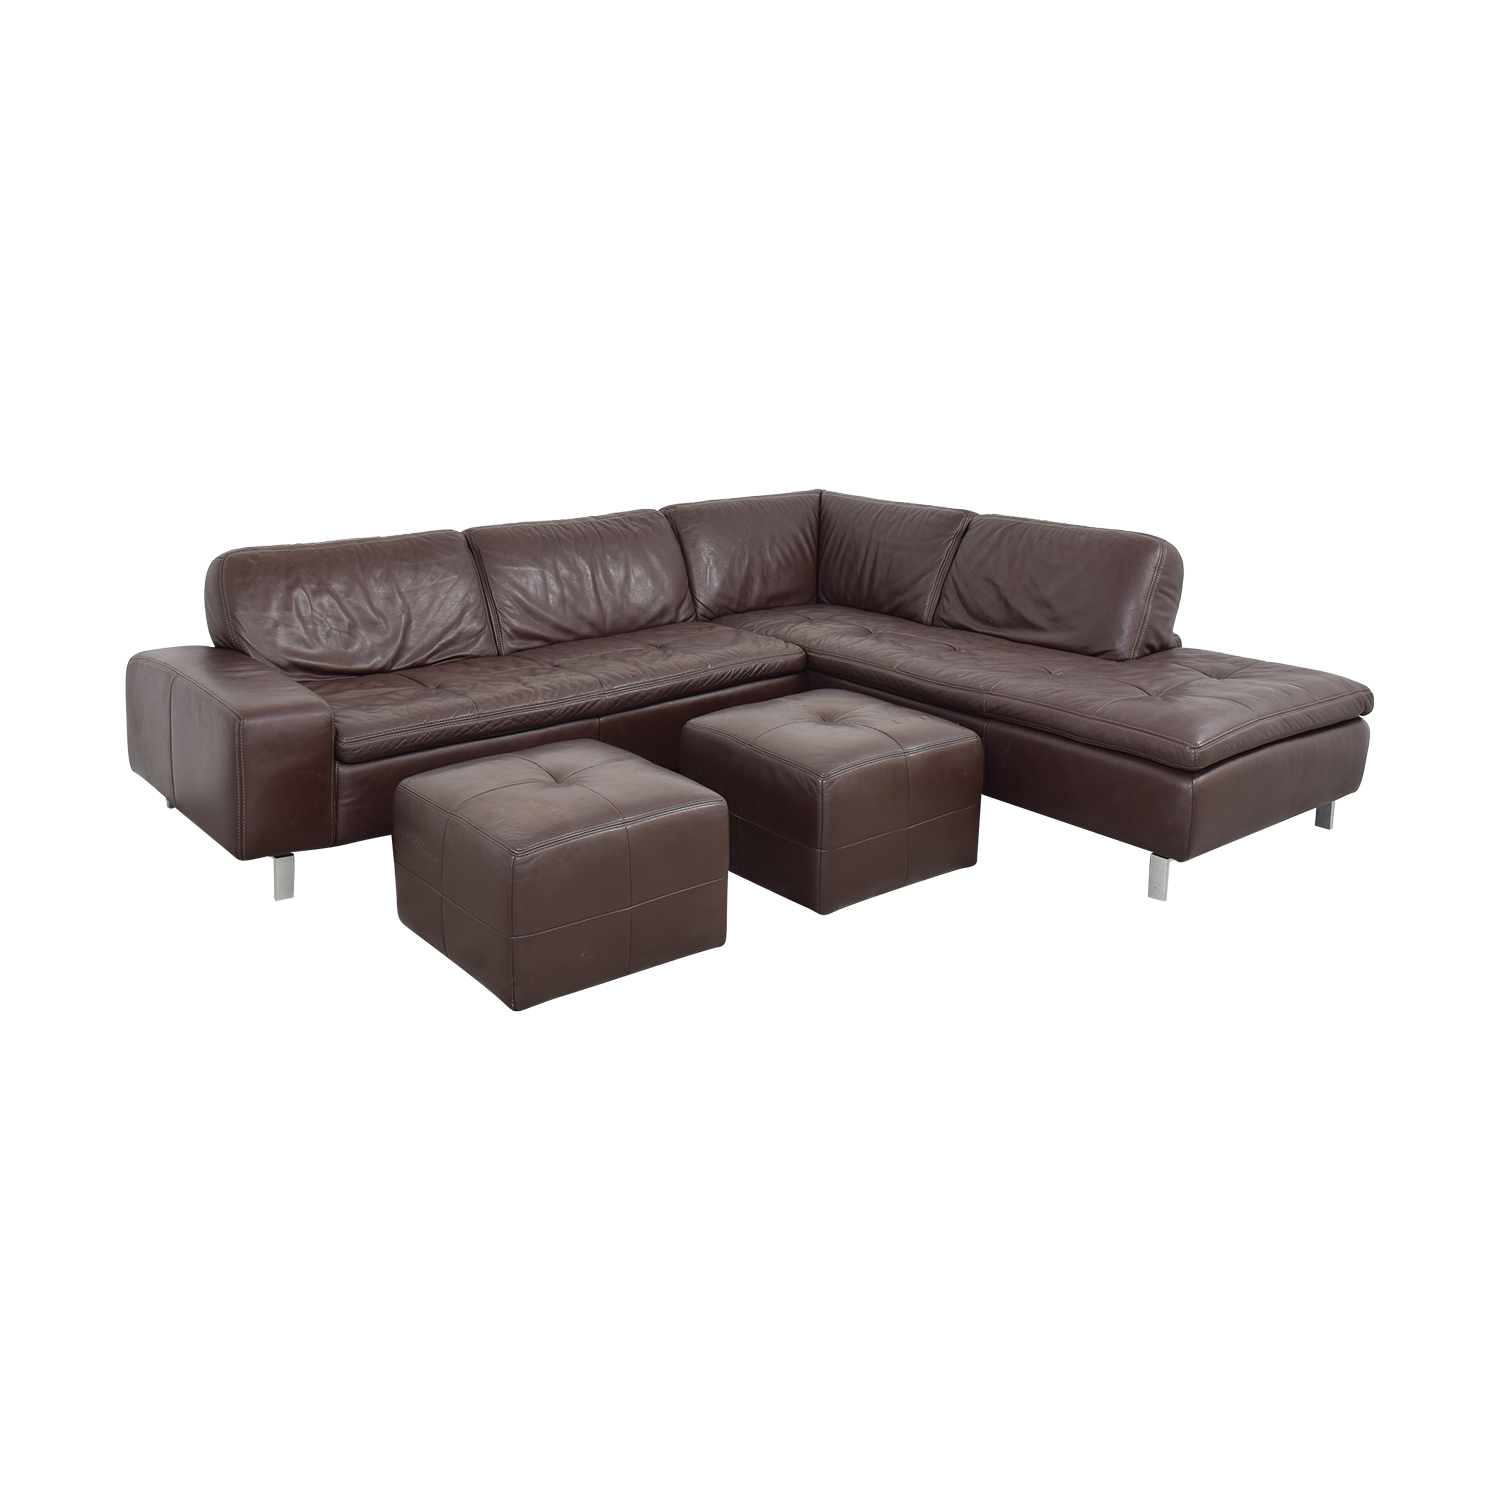 buy Bloomingdale's Bloomingdale's Sectional Sofa with Chaise and Ottomans online